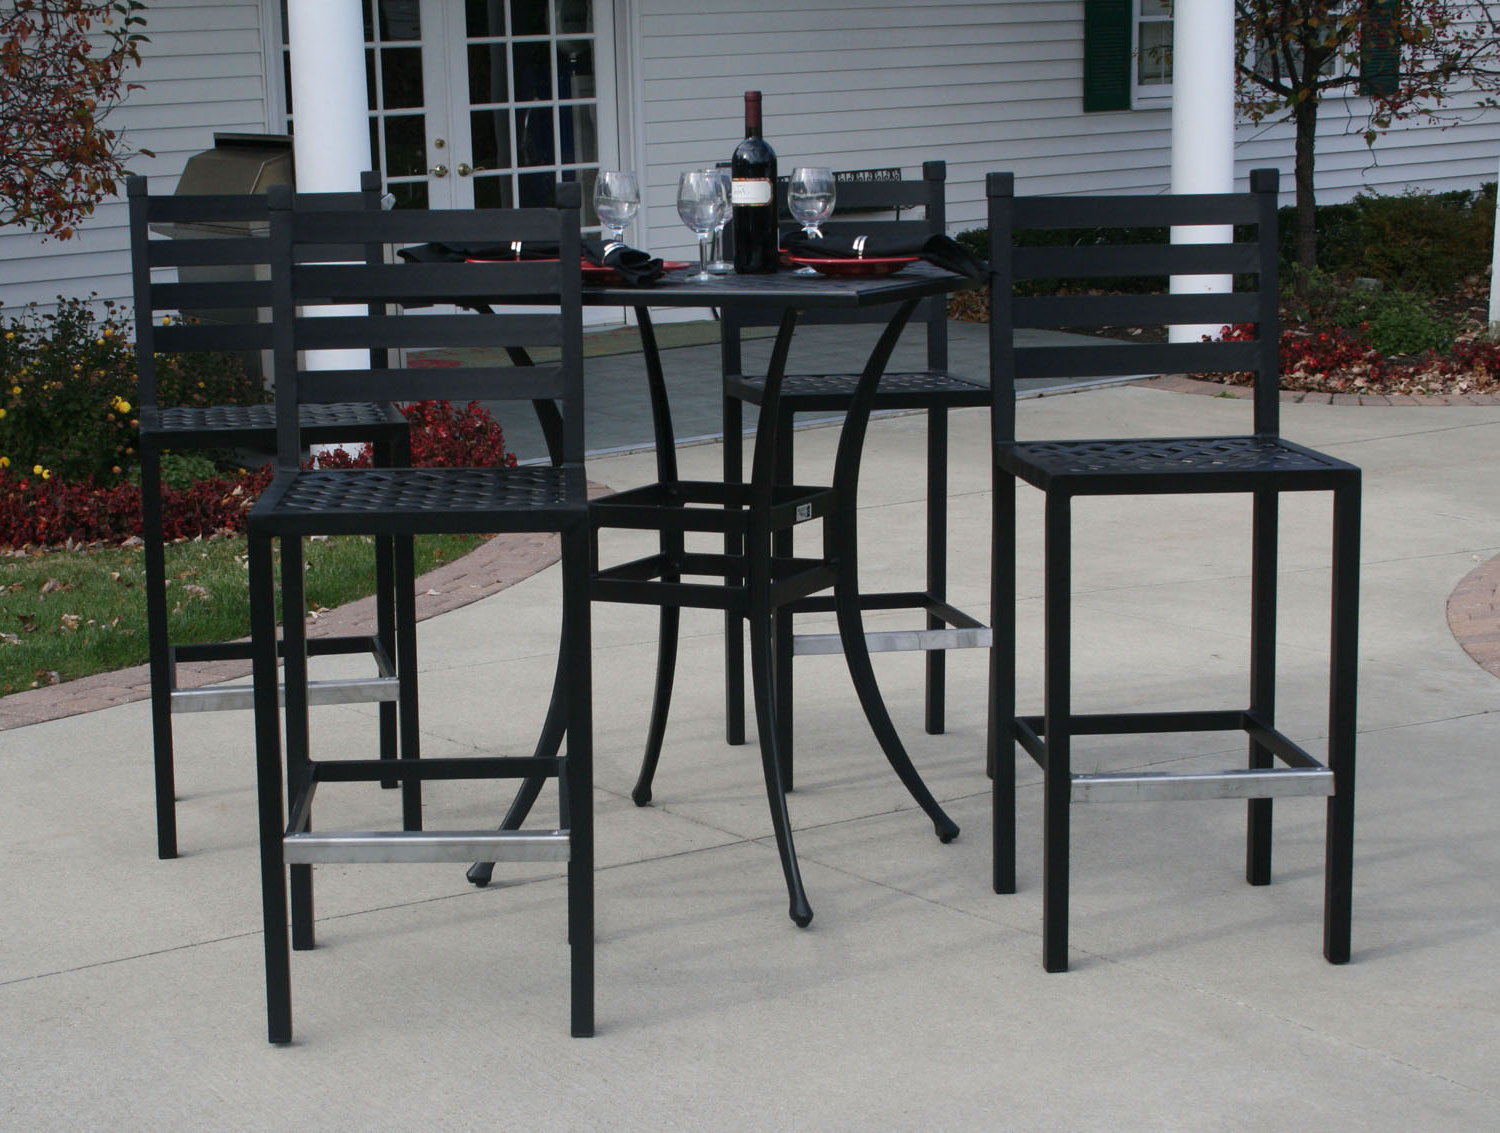 2018 Ansley Luxury 4 Person All Welded Cast Aluminum Patio Within Patio Square Bar Dining Tables (View 8 of 30)